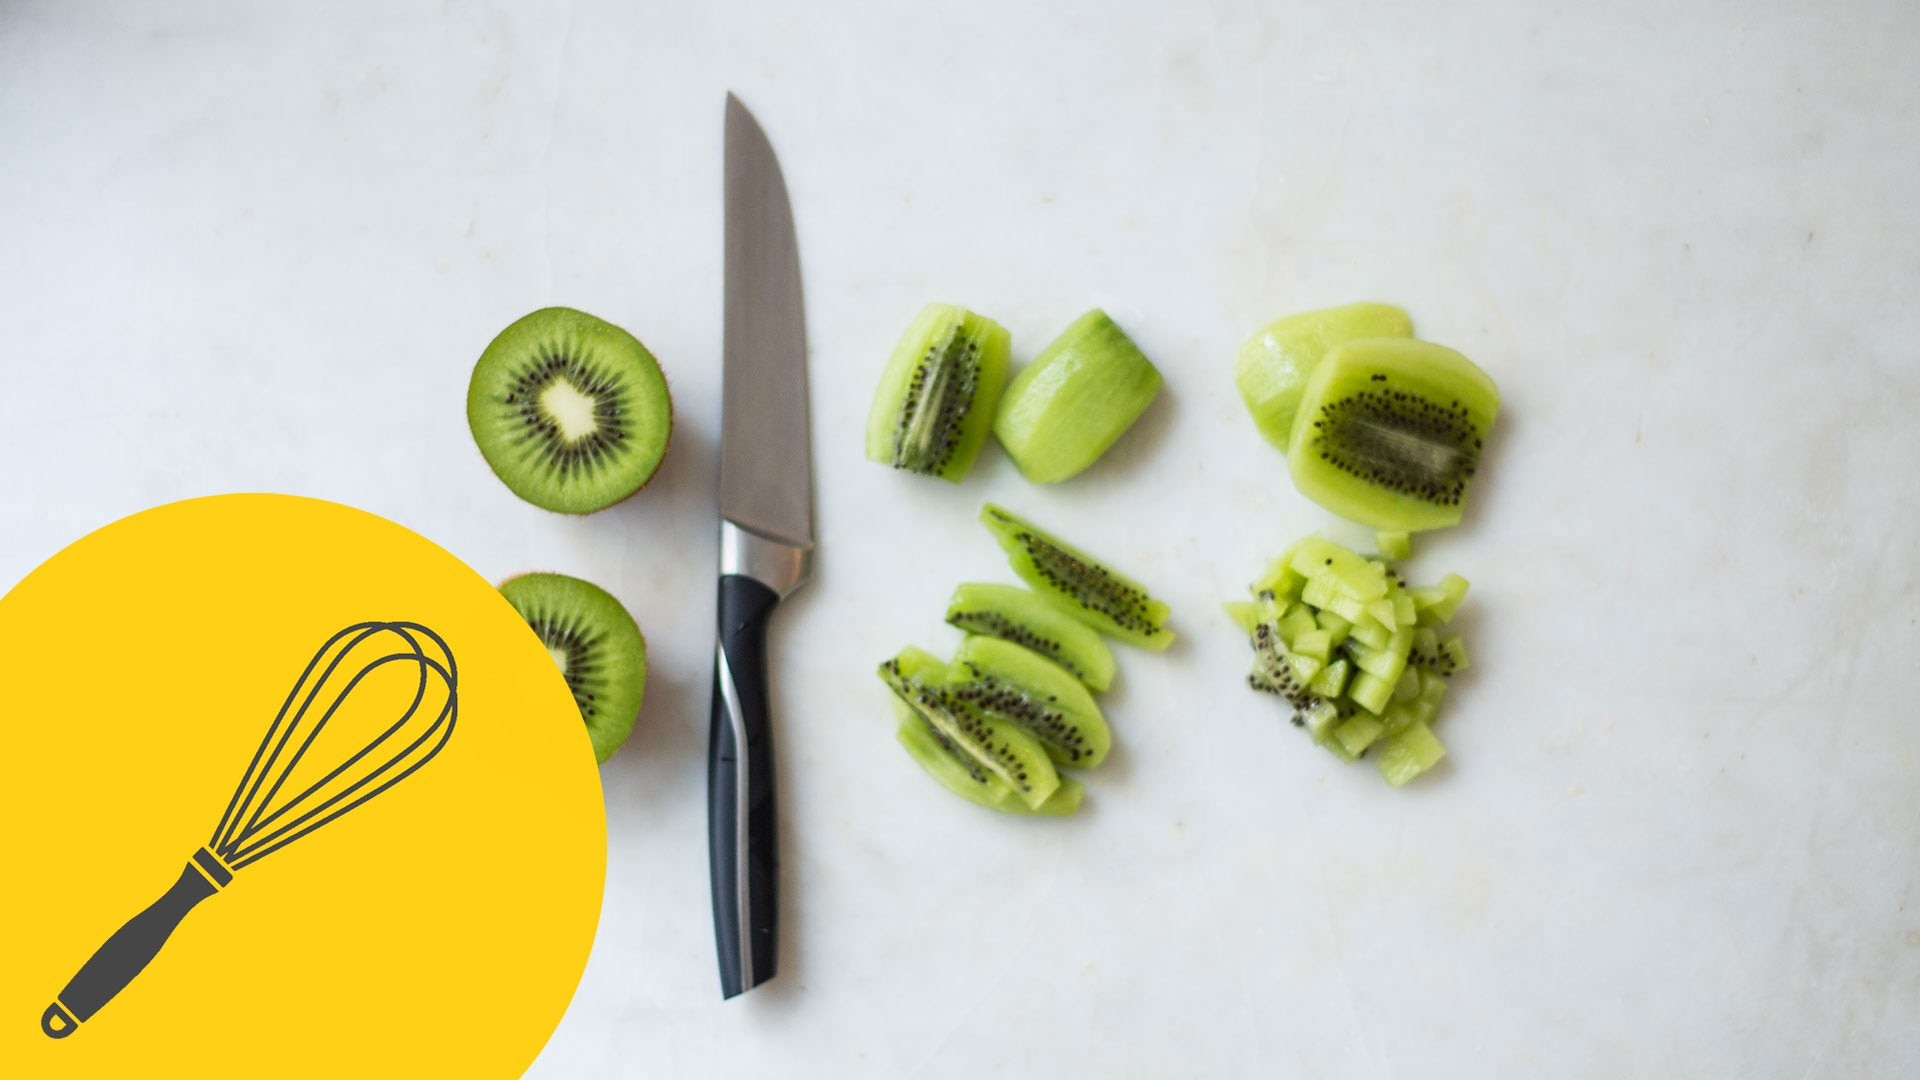 How to Peel and Cut a Kiwi | Essential Knife Skills | Cooking like the Pros